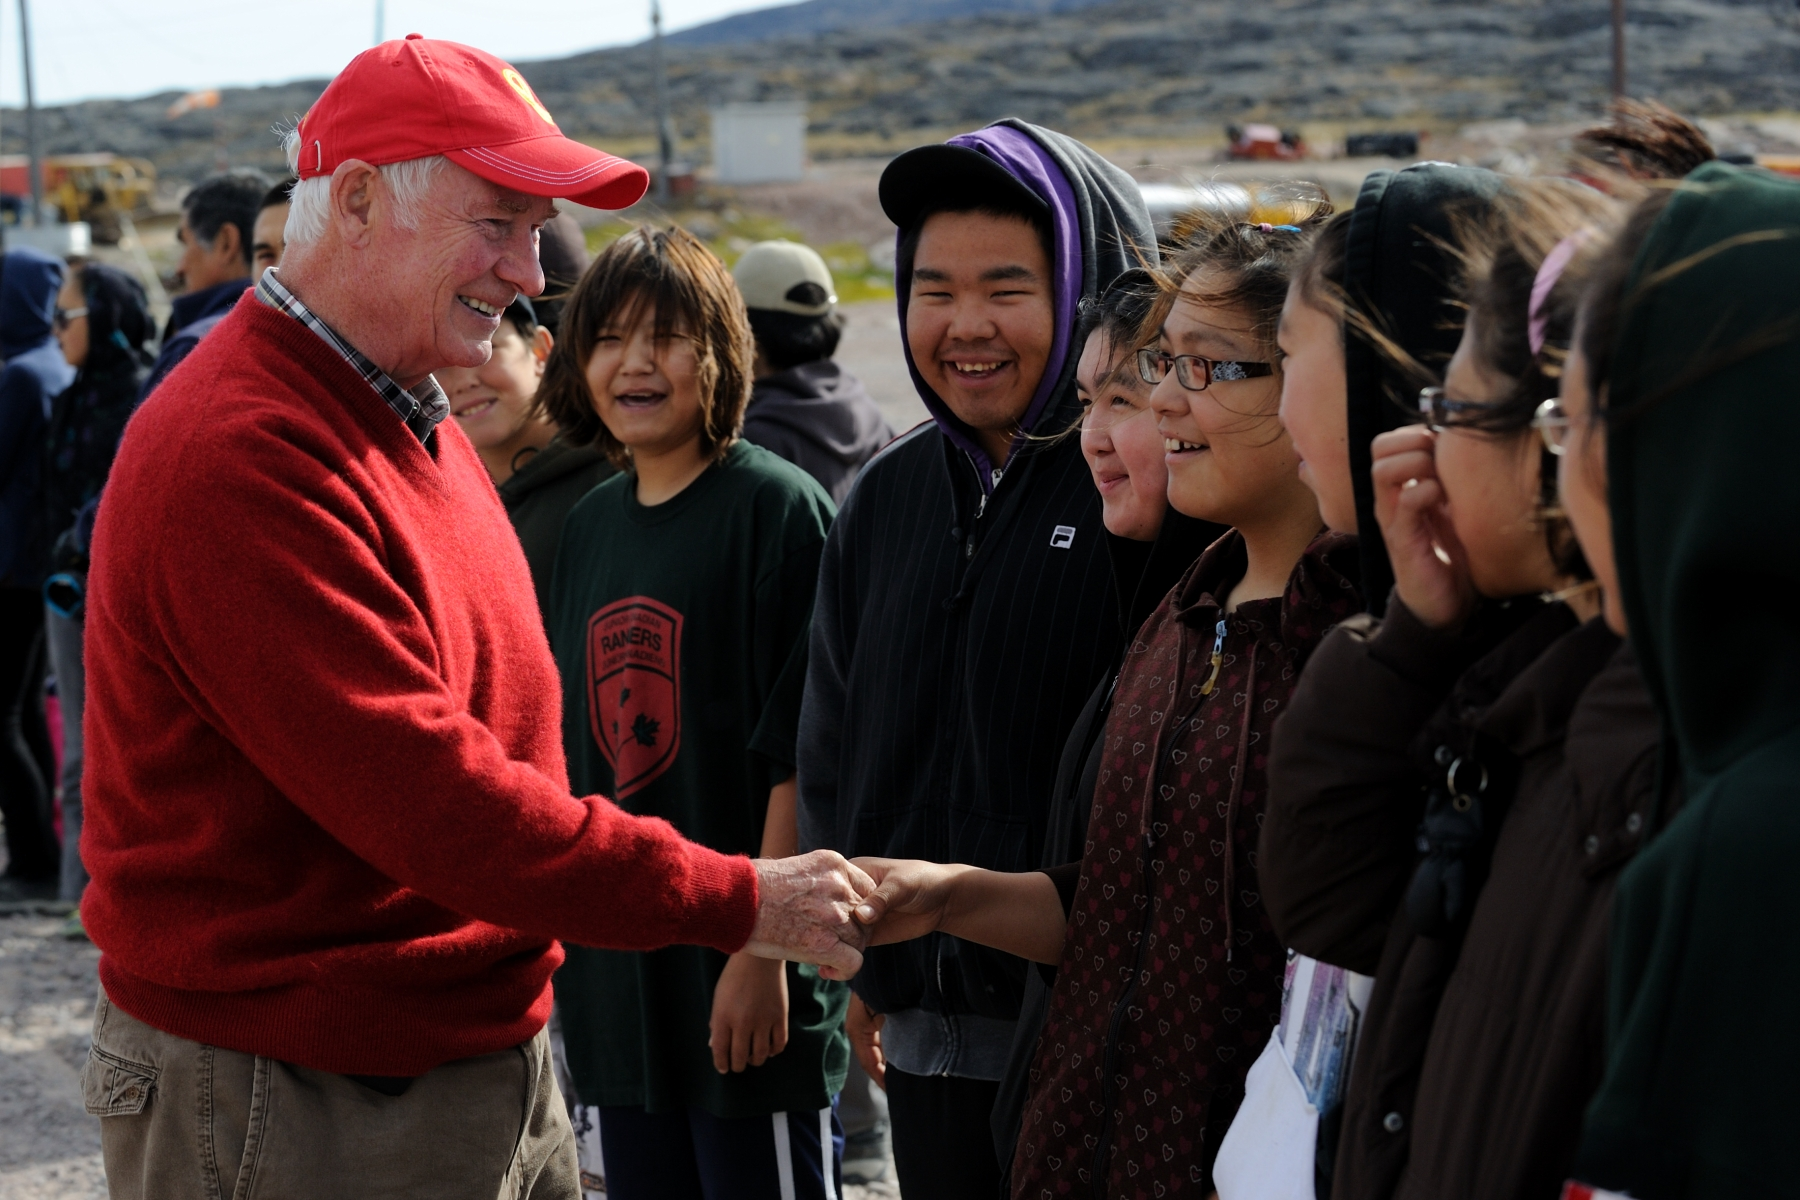 The Governor General shook hands and met with students from the Kugaaruk School.